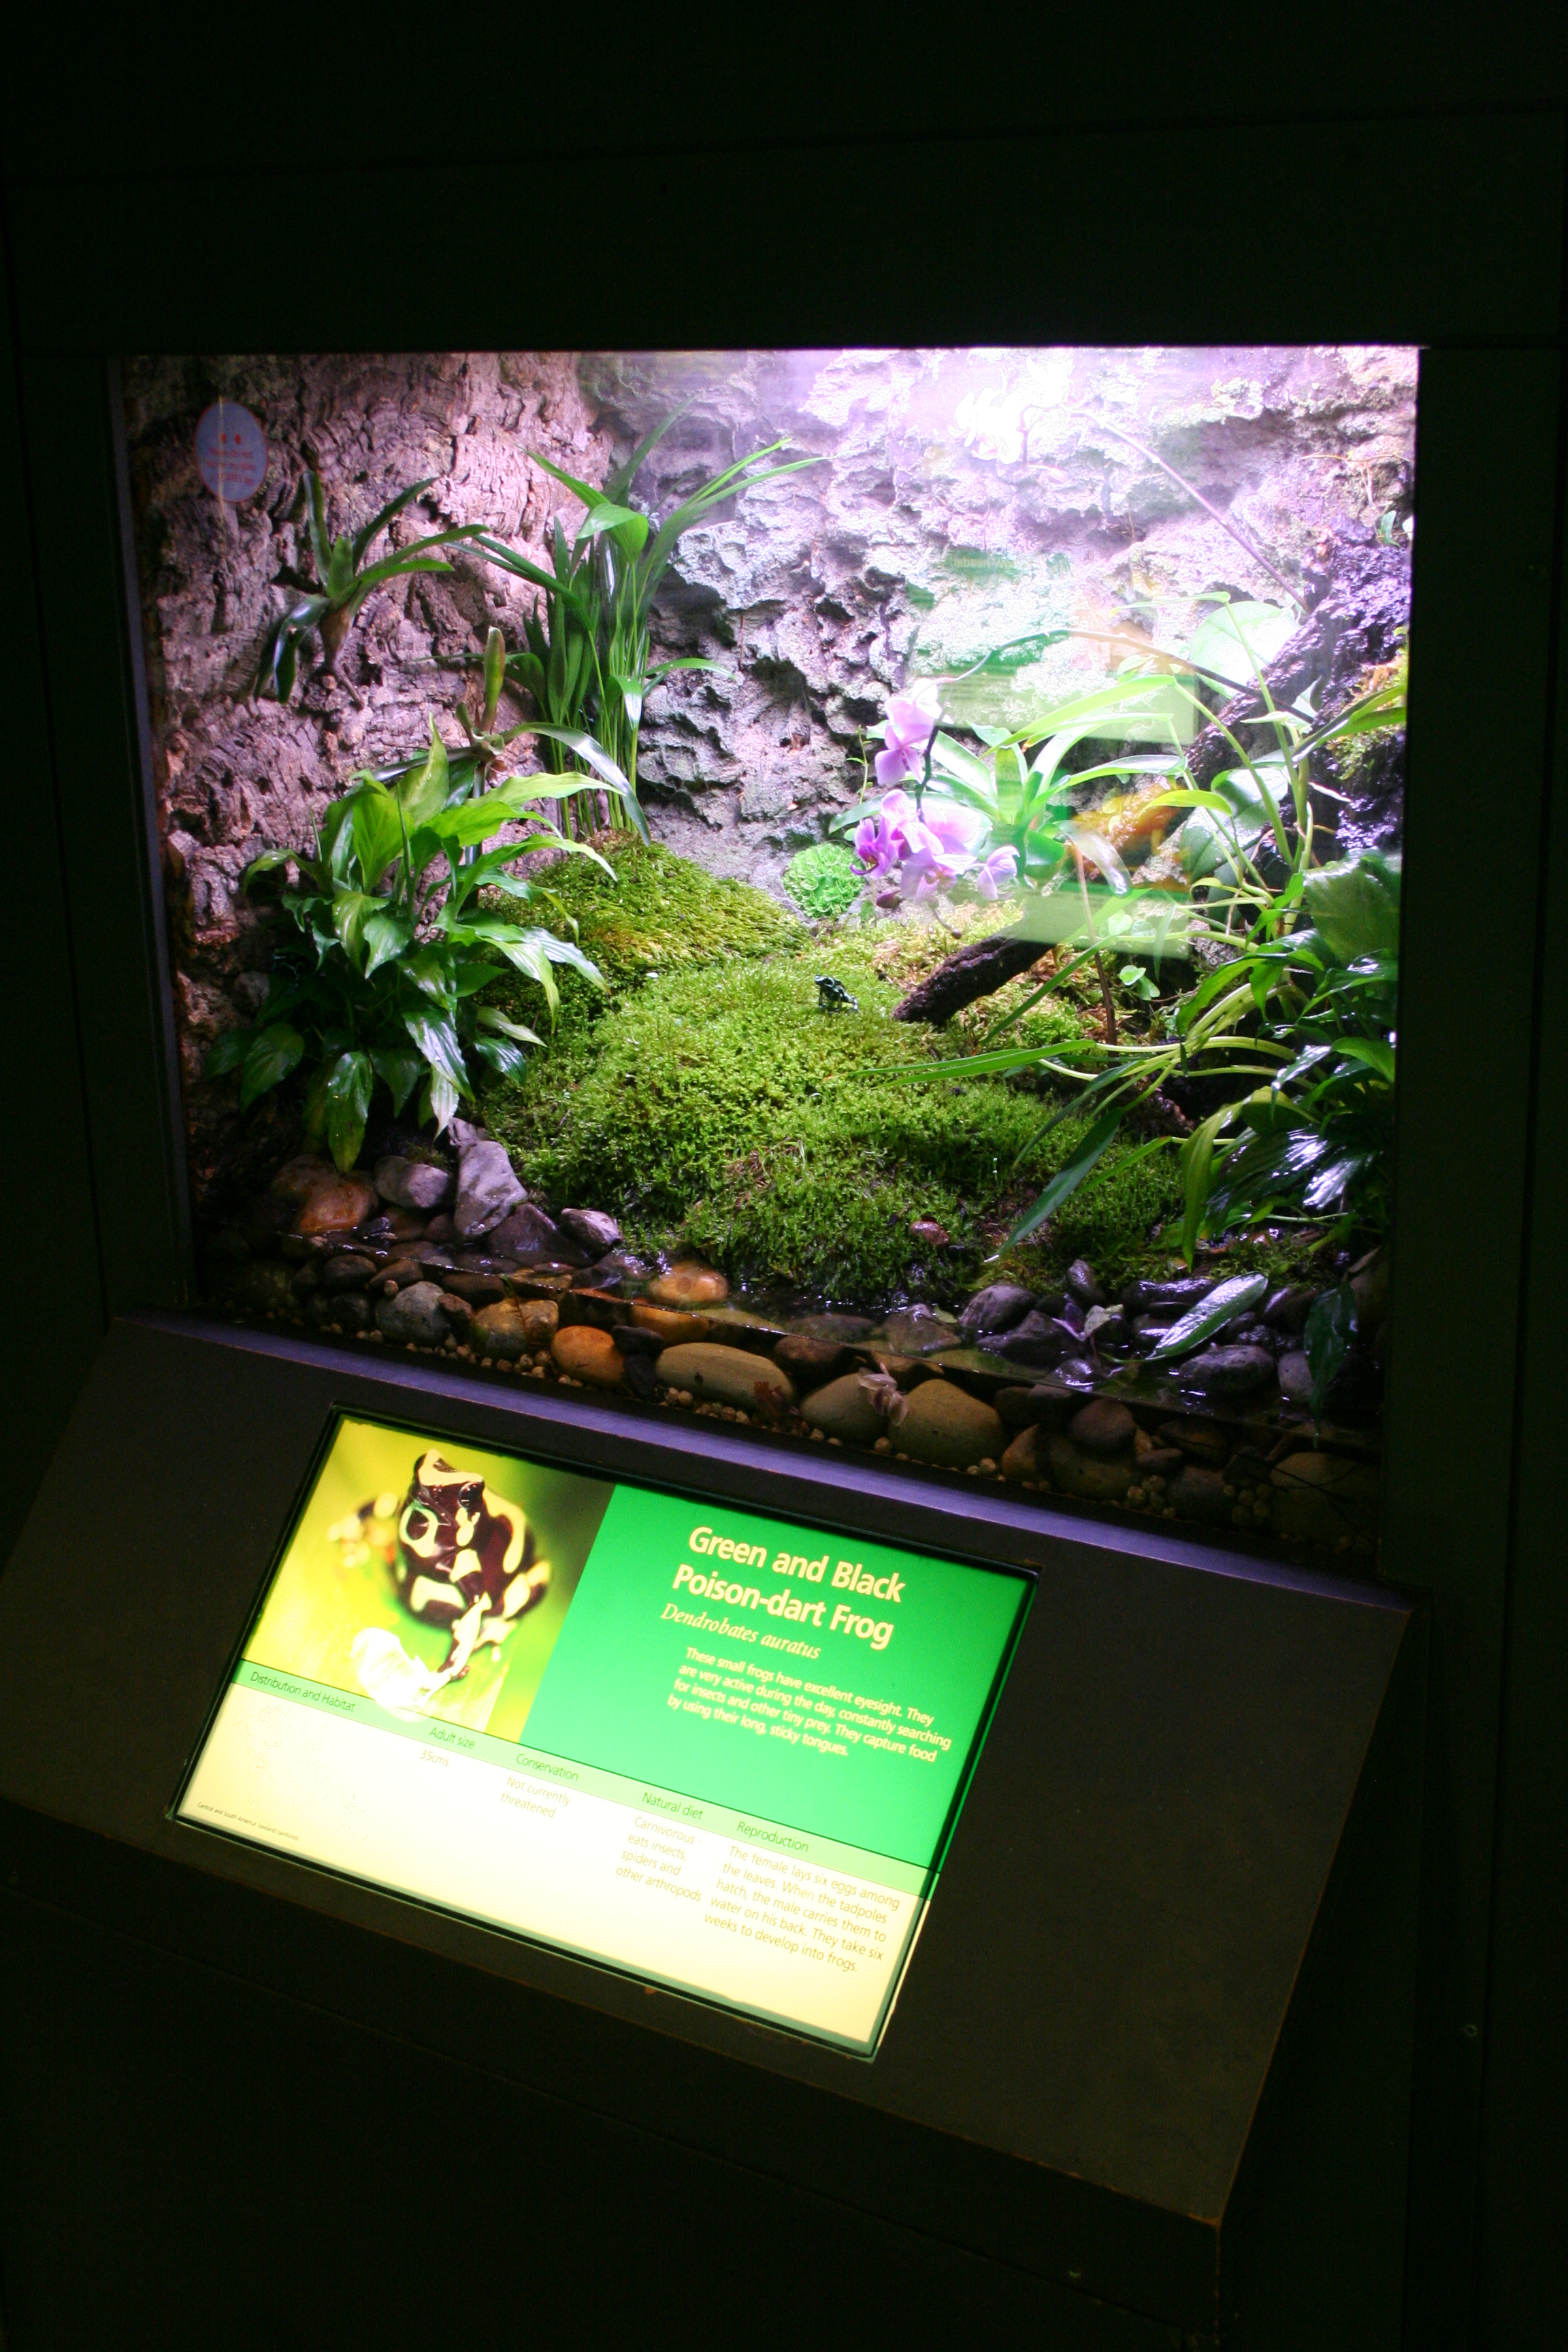 New Poison Dart Frog Exhibit Frog Blog Manchester